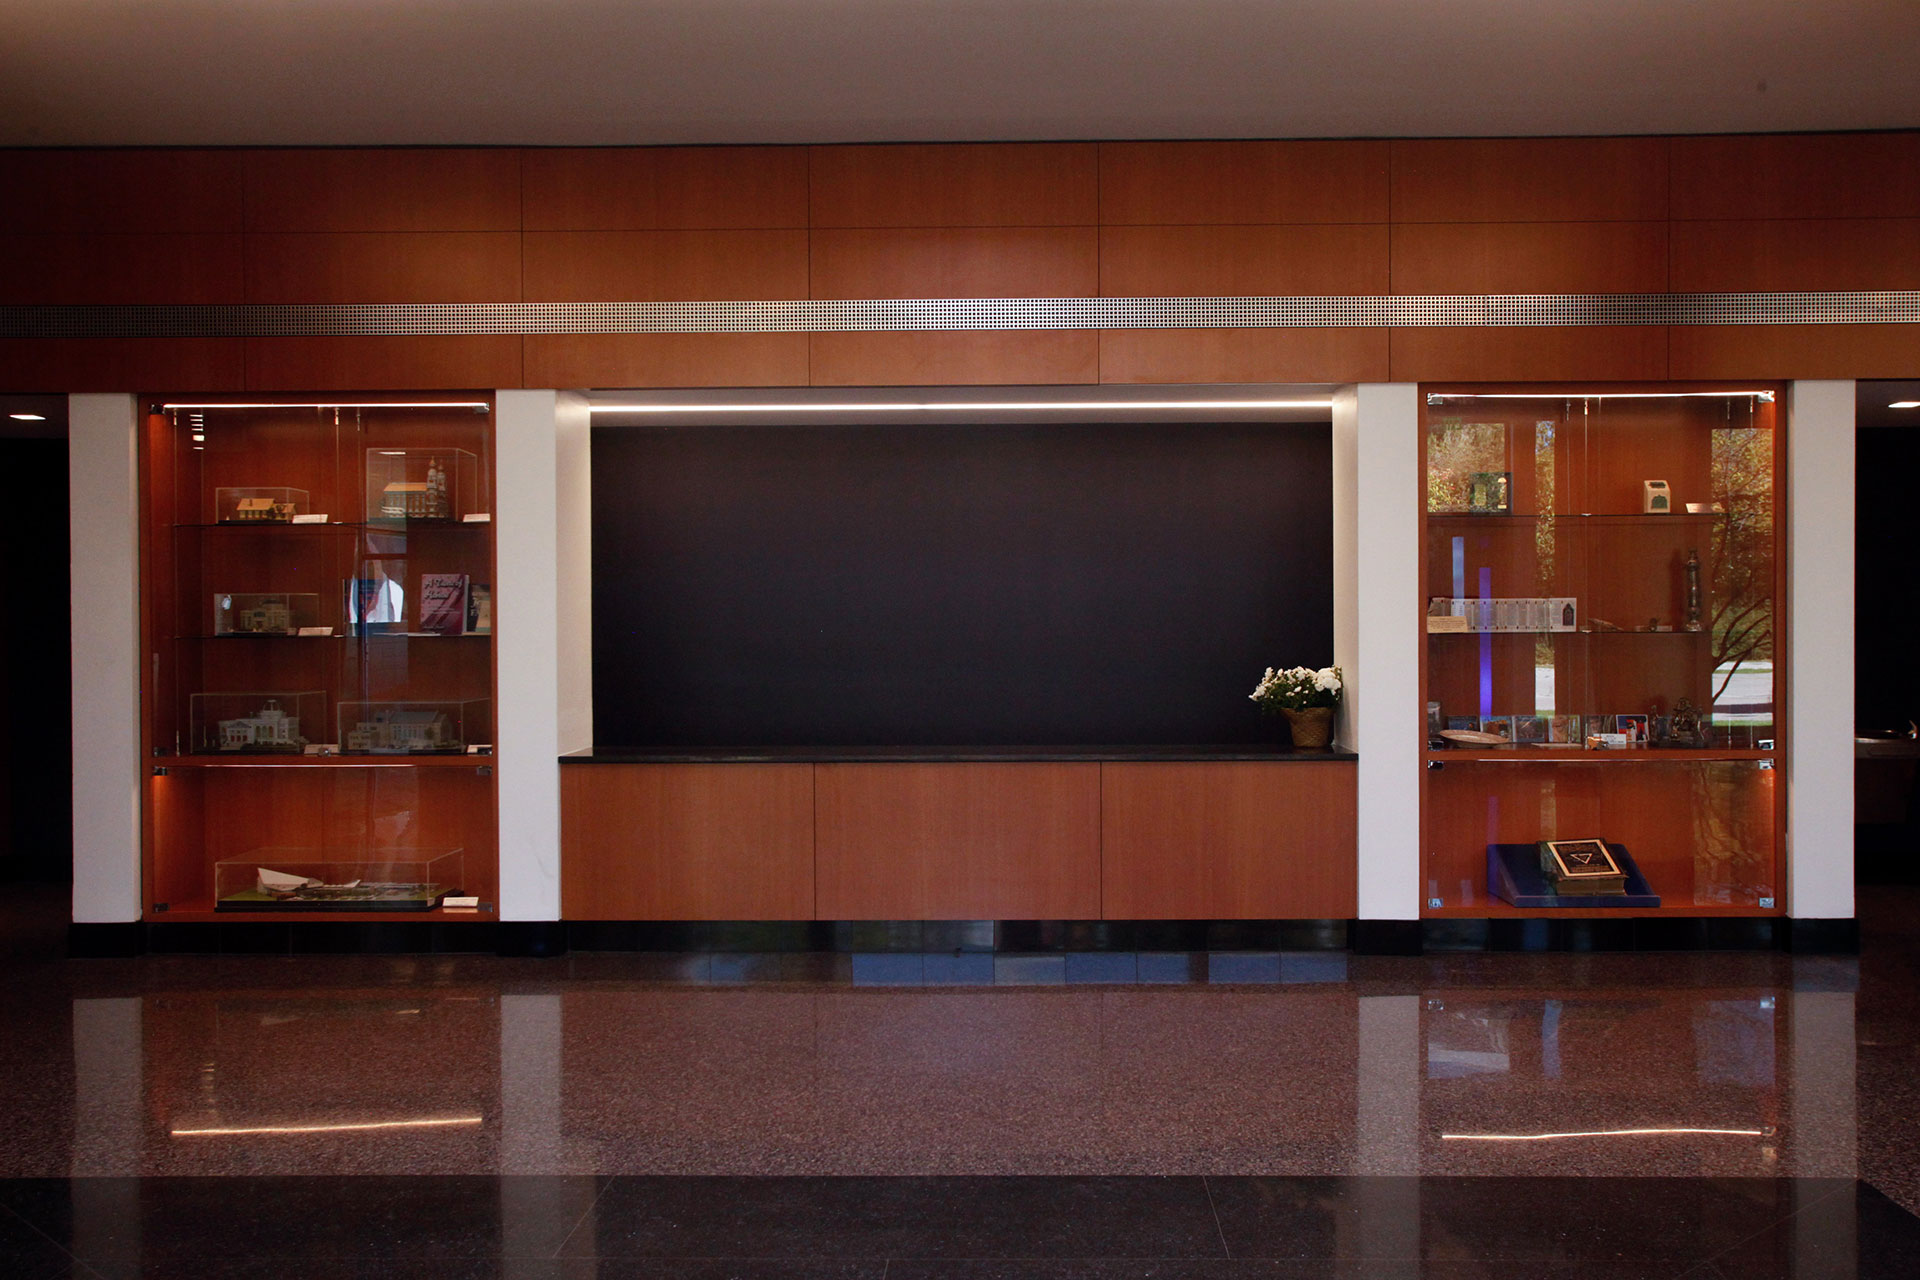 Plastic laminate wall panels with reveals and integrated cabinets with glass doors.